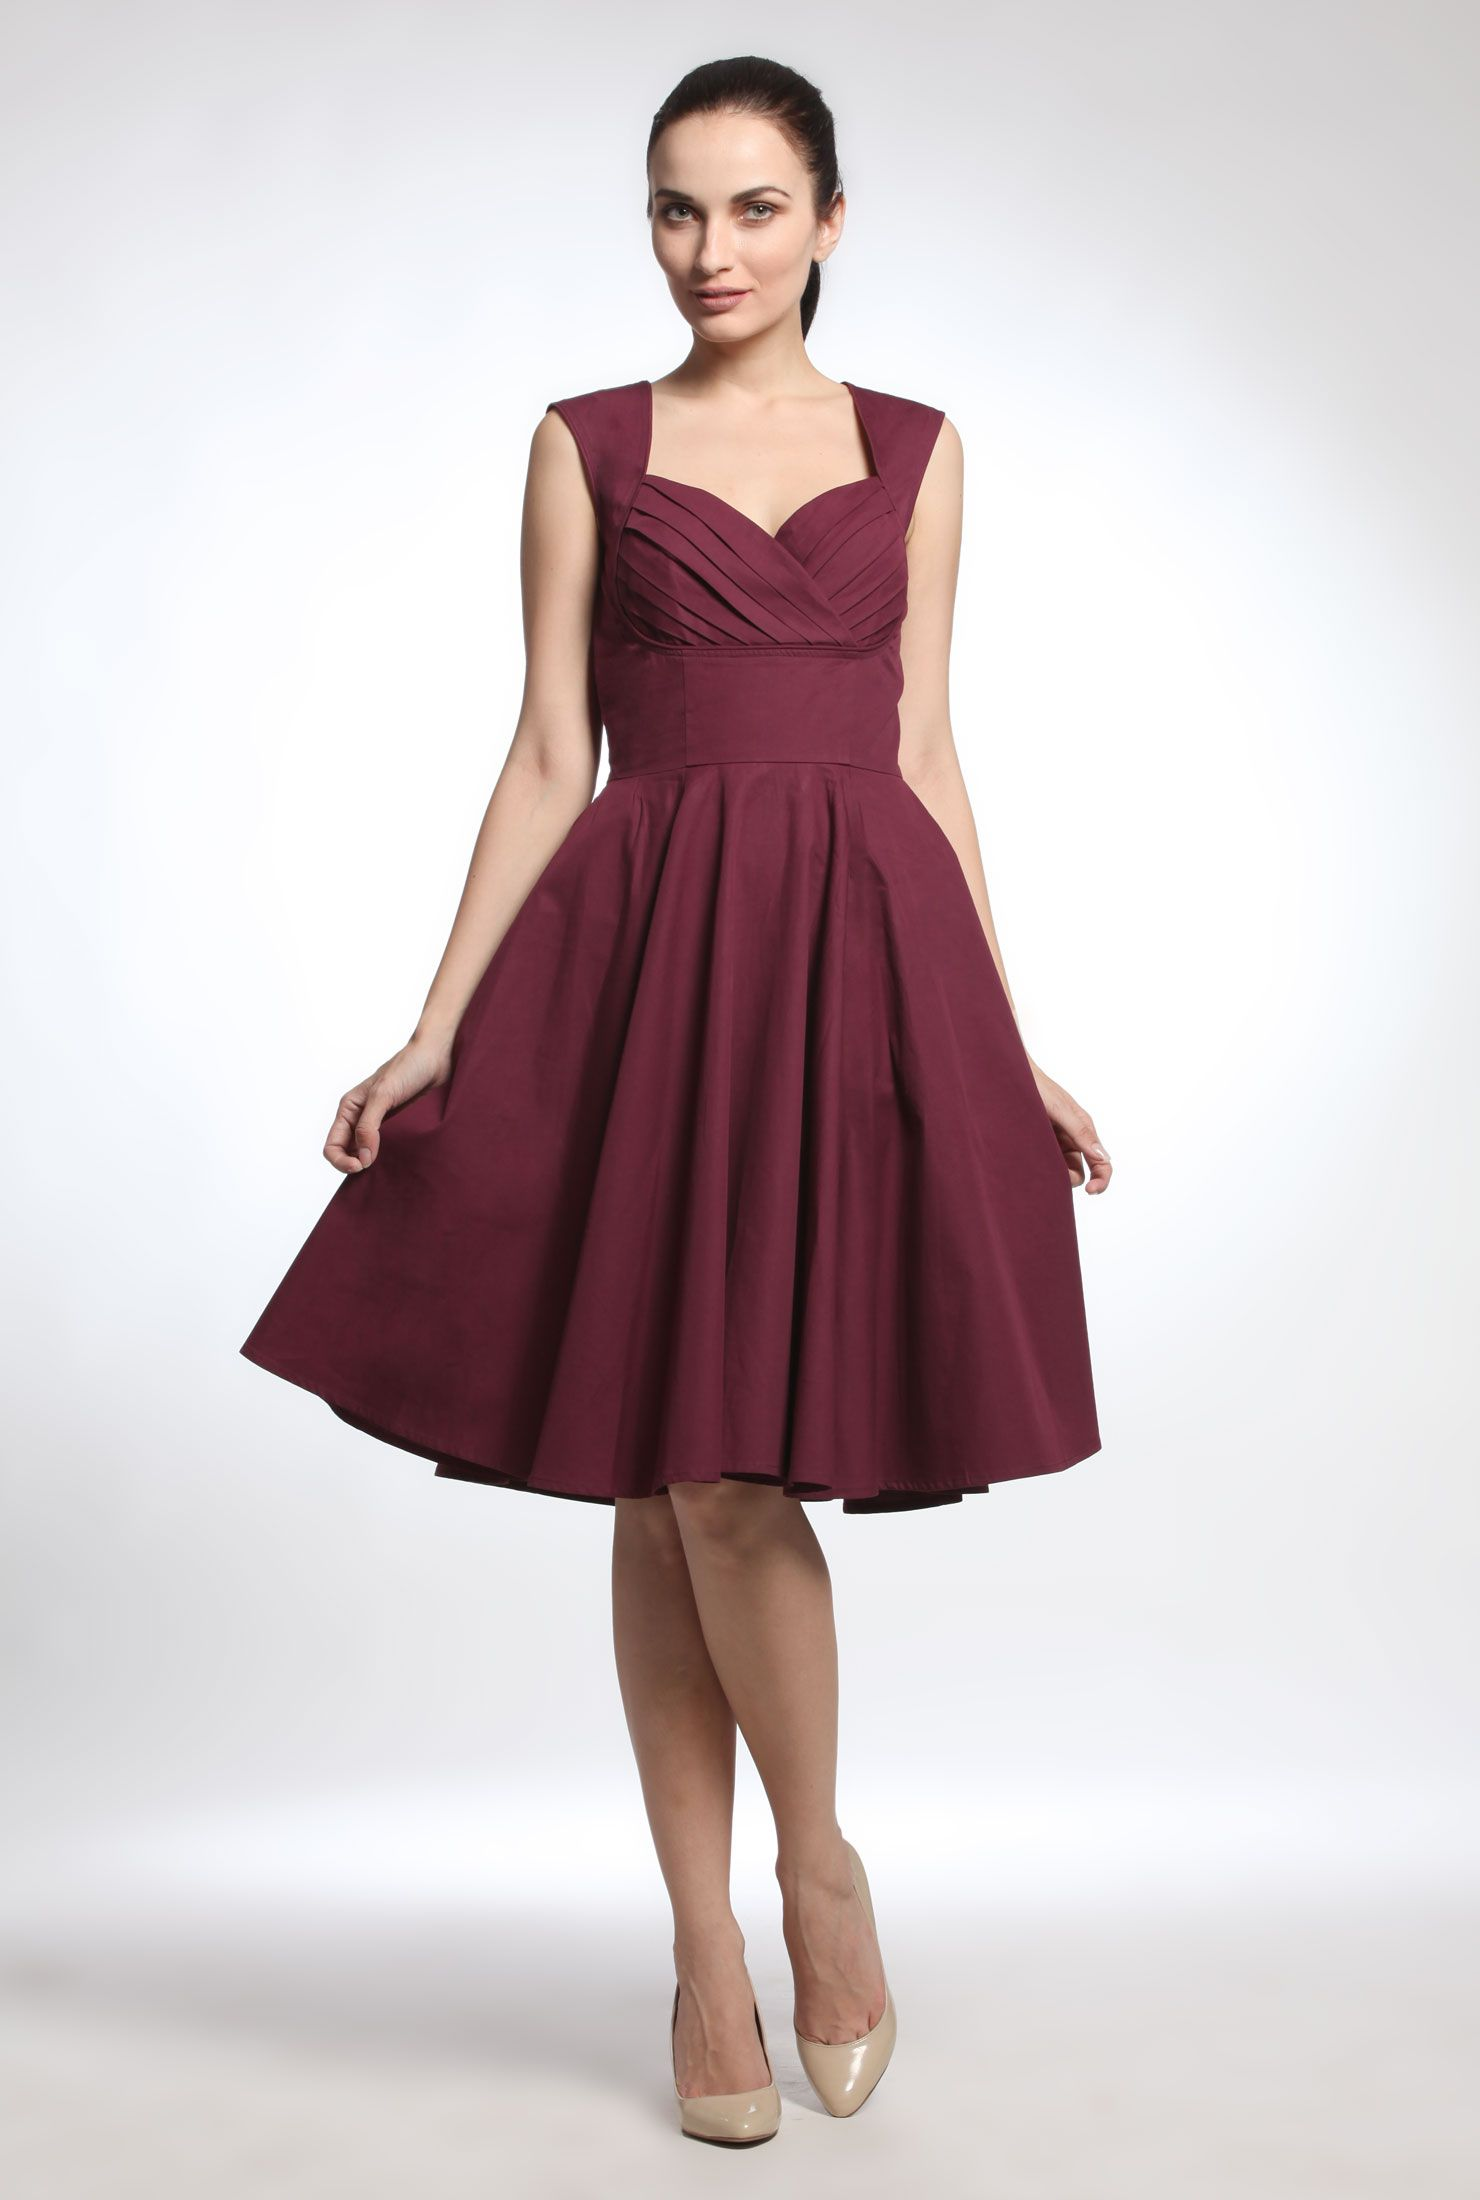 cocktail-dresses-for-petite-women- | Petite Cocktail Dress ...